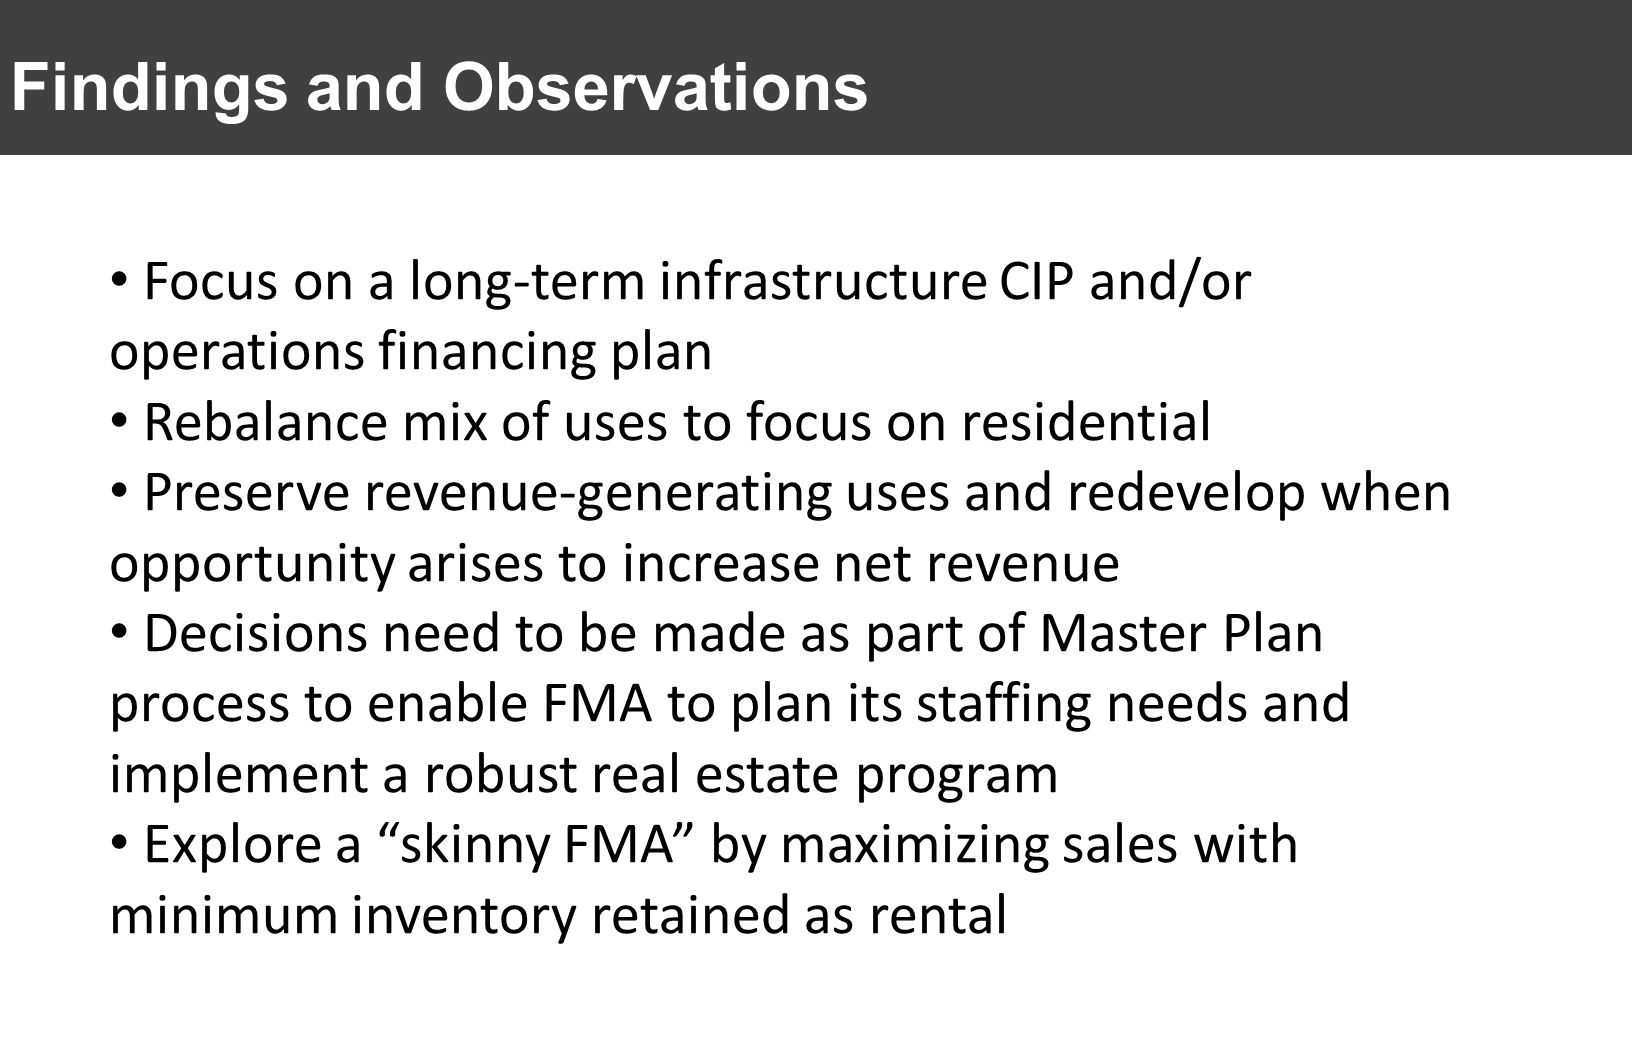 Findings and Observations Focus on a long-term infrastructure CIP and/or operations financing plan Rebalance mix of uses to focus on residential Prese